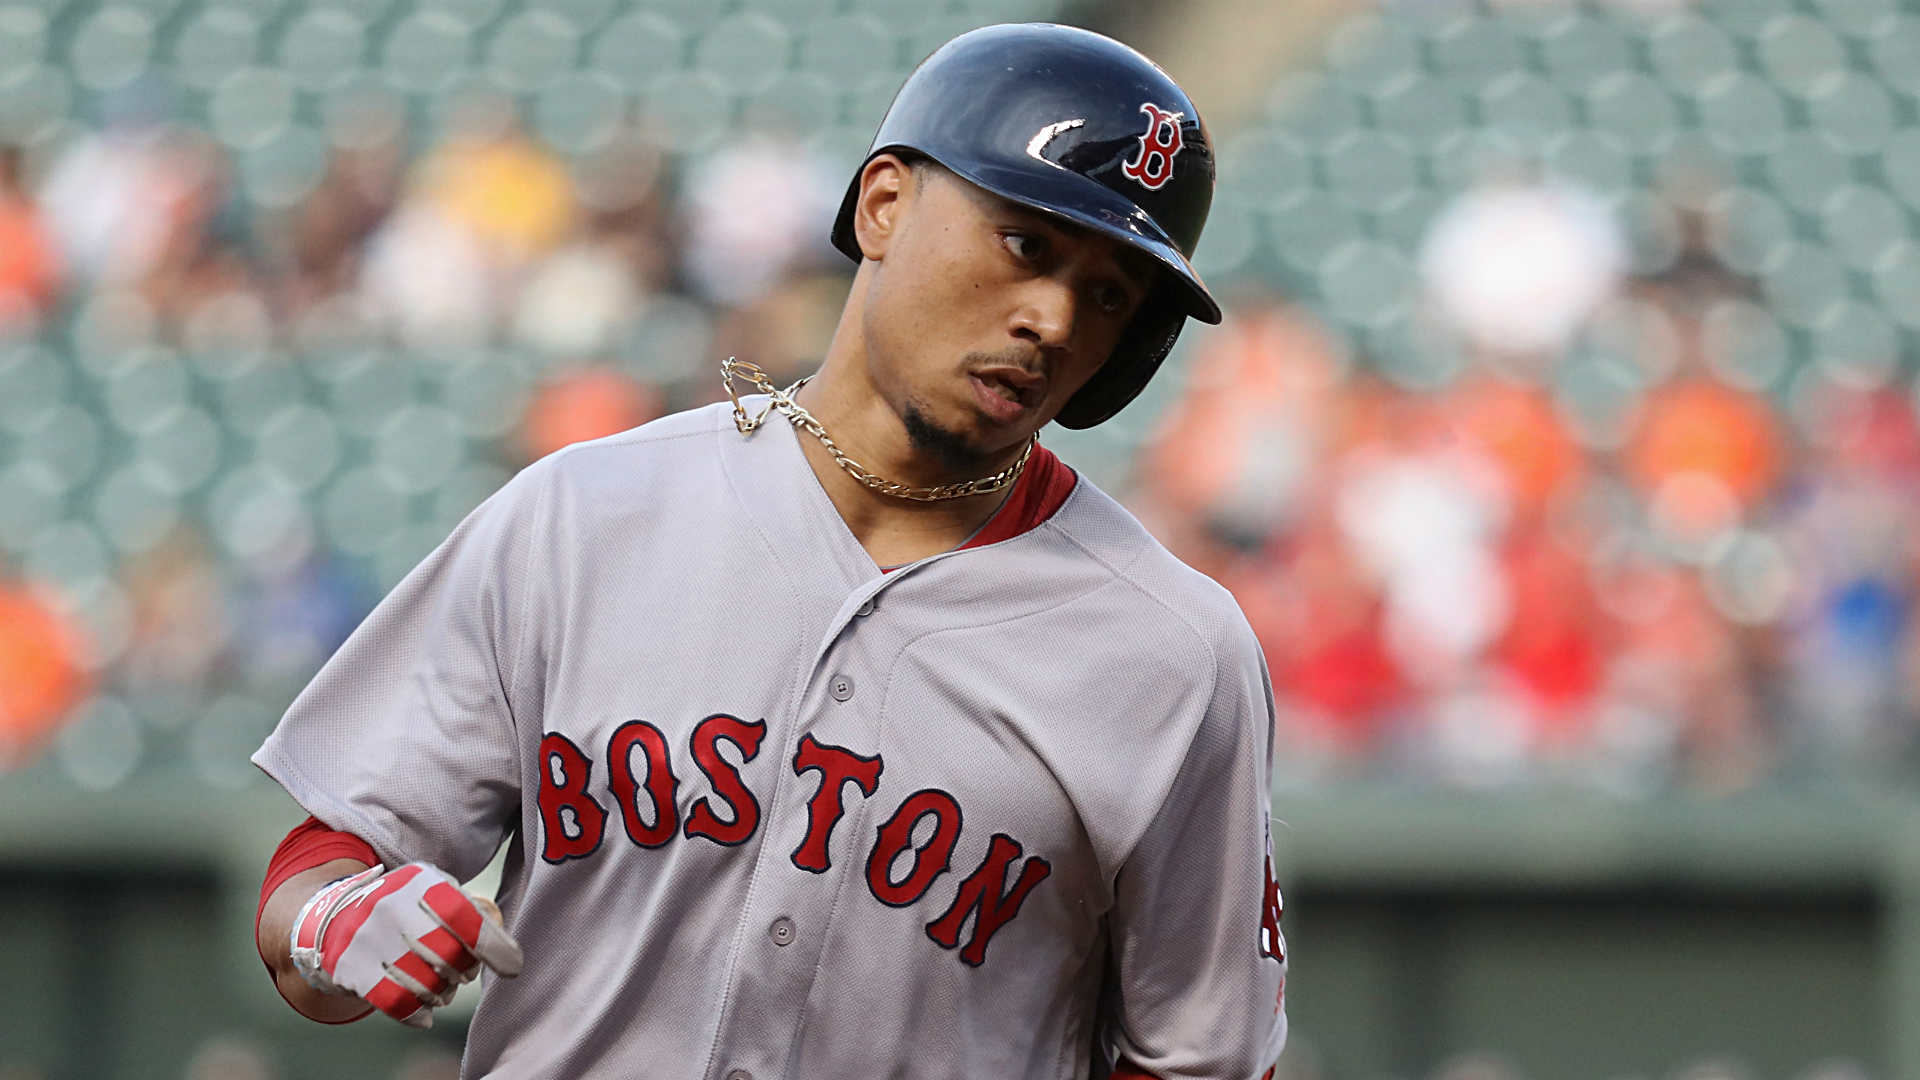 Mookie Betts injury update: Red Sox' star placed on 10-day DL with abdominal strain